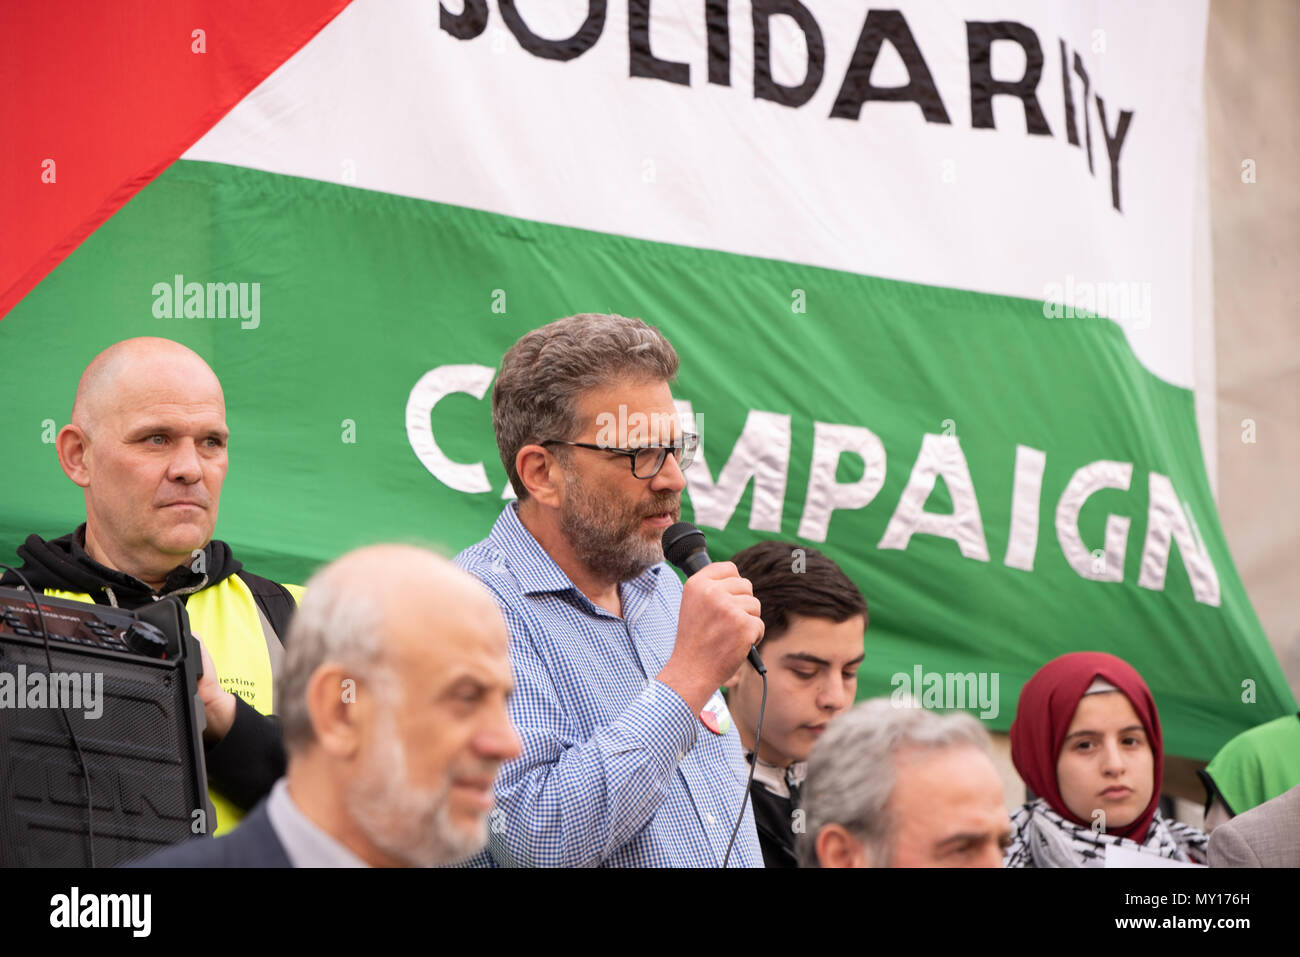 London, UK.  5 June, 2018  Demonstration outside Downing Street organised by Friends of Al Aqsa.  Demonstration organised to protest against the killing and injustice in Gaza and to stand in solidarity with the Great Return March. - Stock Image